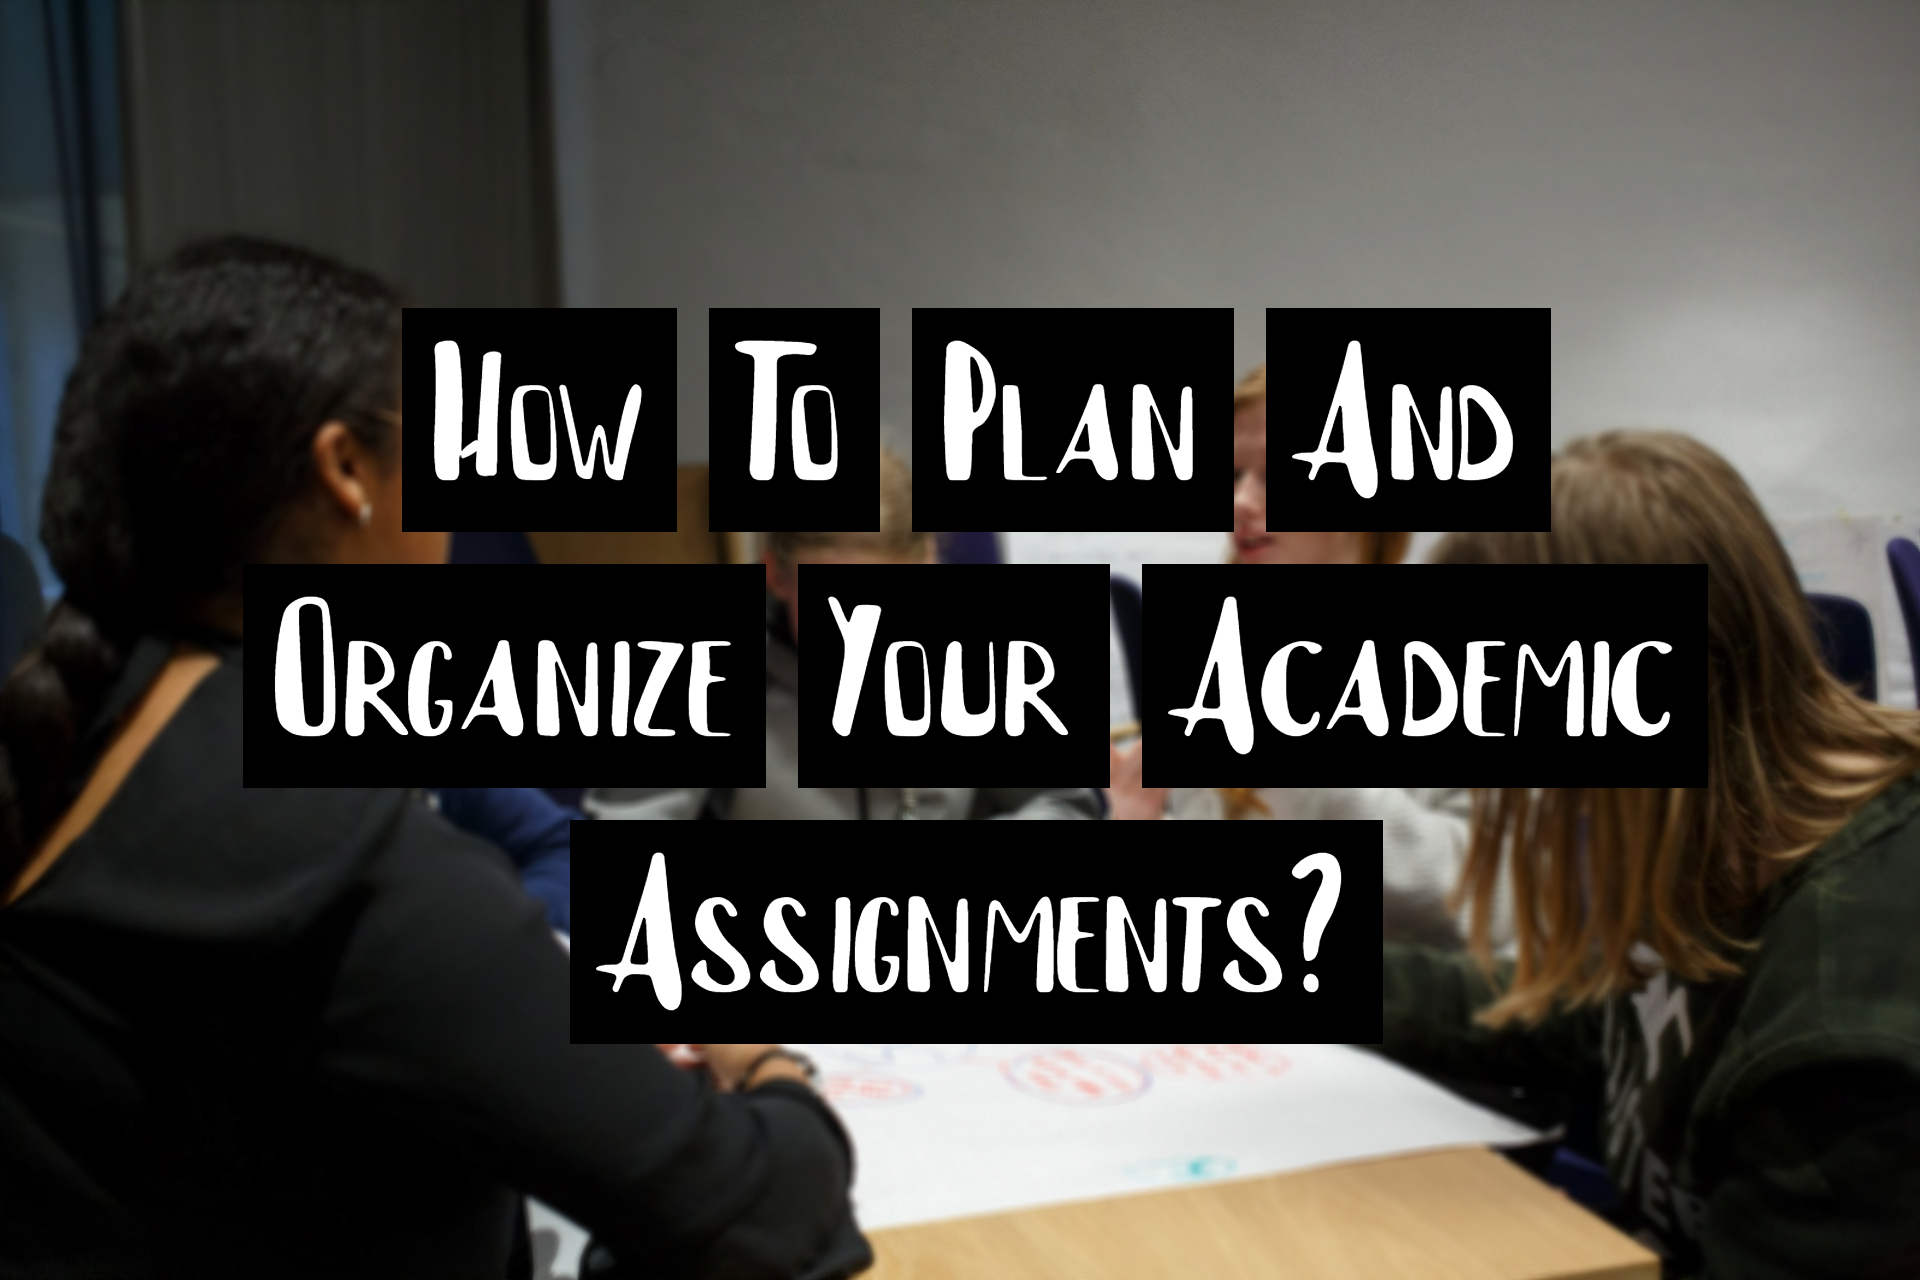 How To Plan And Organize Your Academic Assignments?